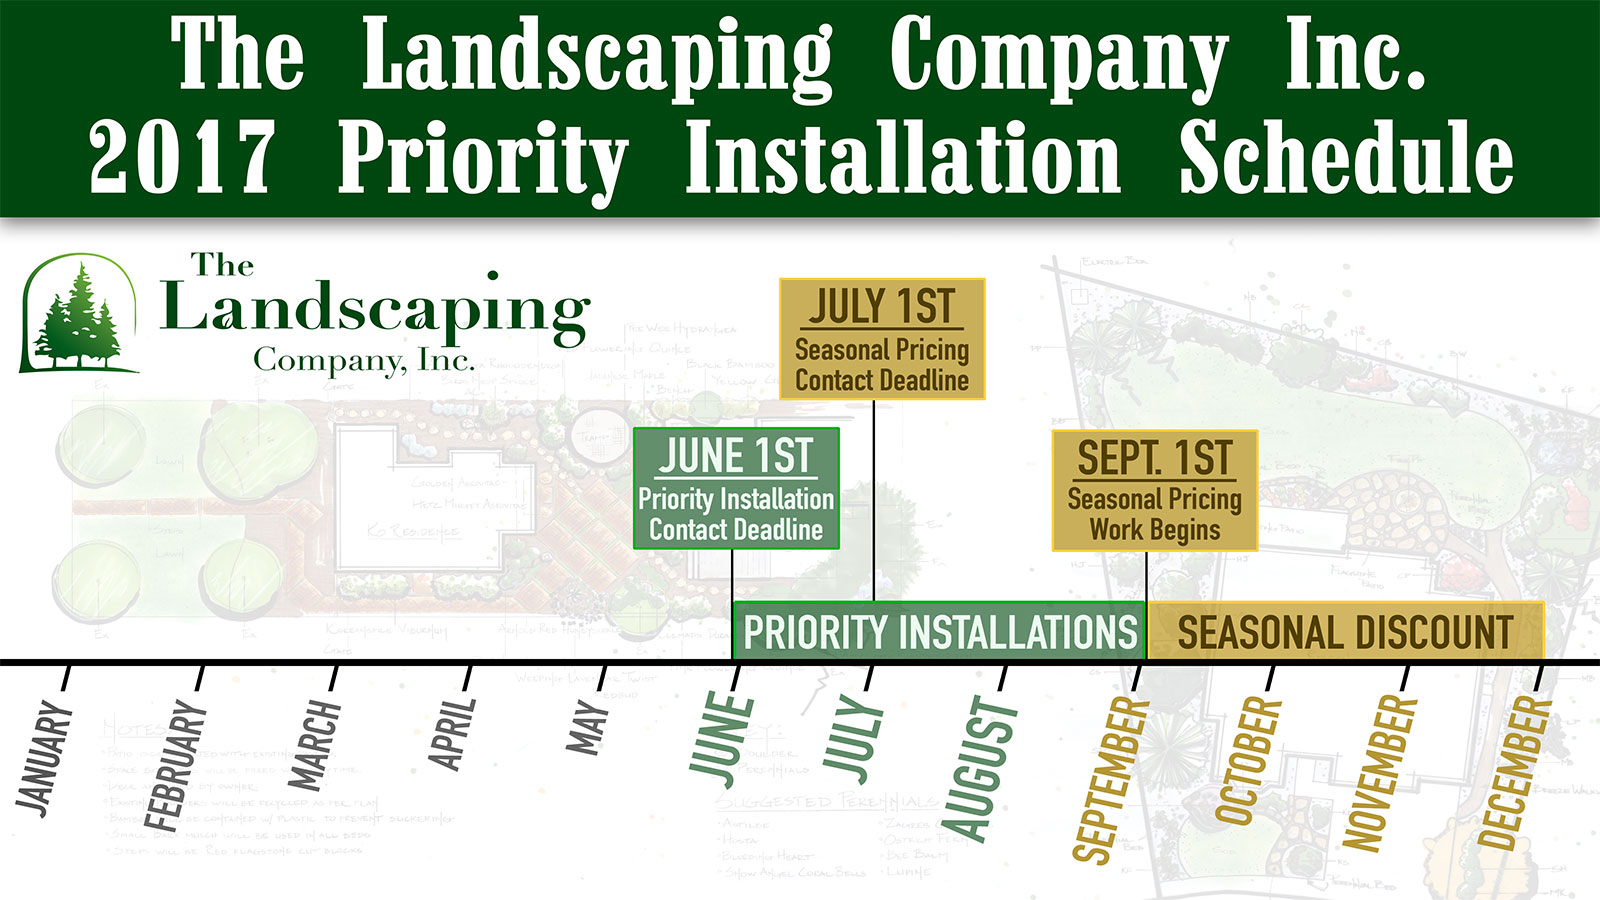 2017 Priority Installaion Schedule for The Landscaping Company Inc. - Denver, CO